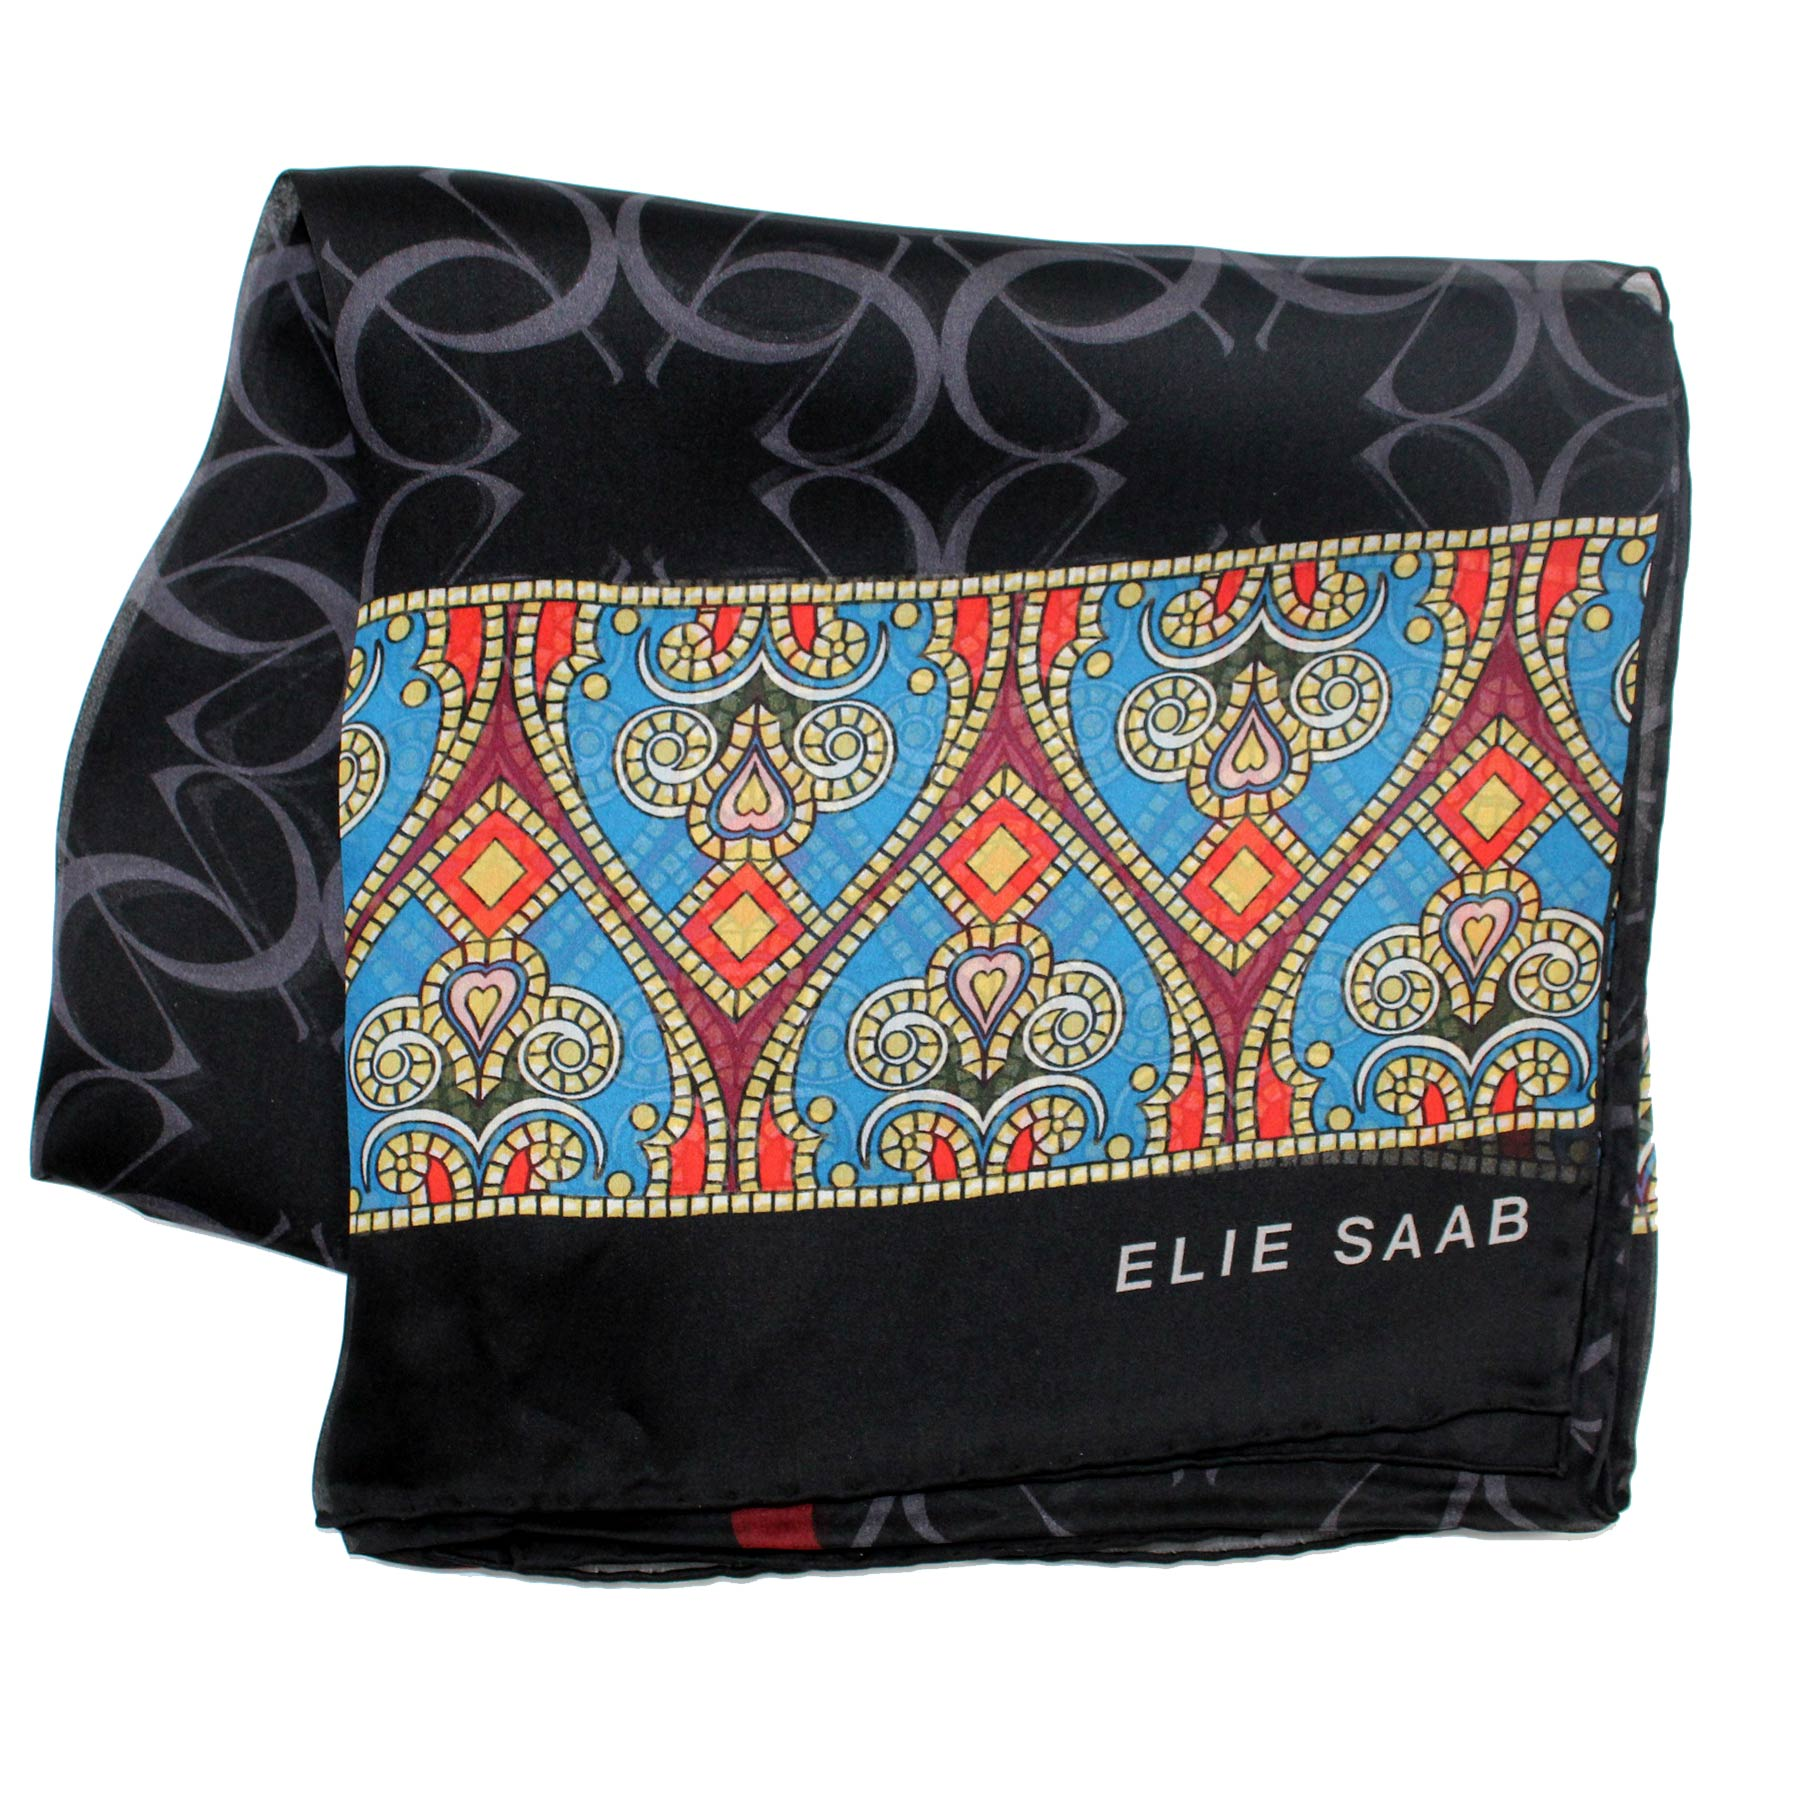 Elie Saab Scarf Black Gray Logo & Hearts Design - Chiffon Silk Shawl SALE